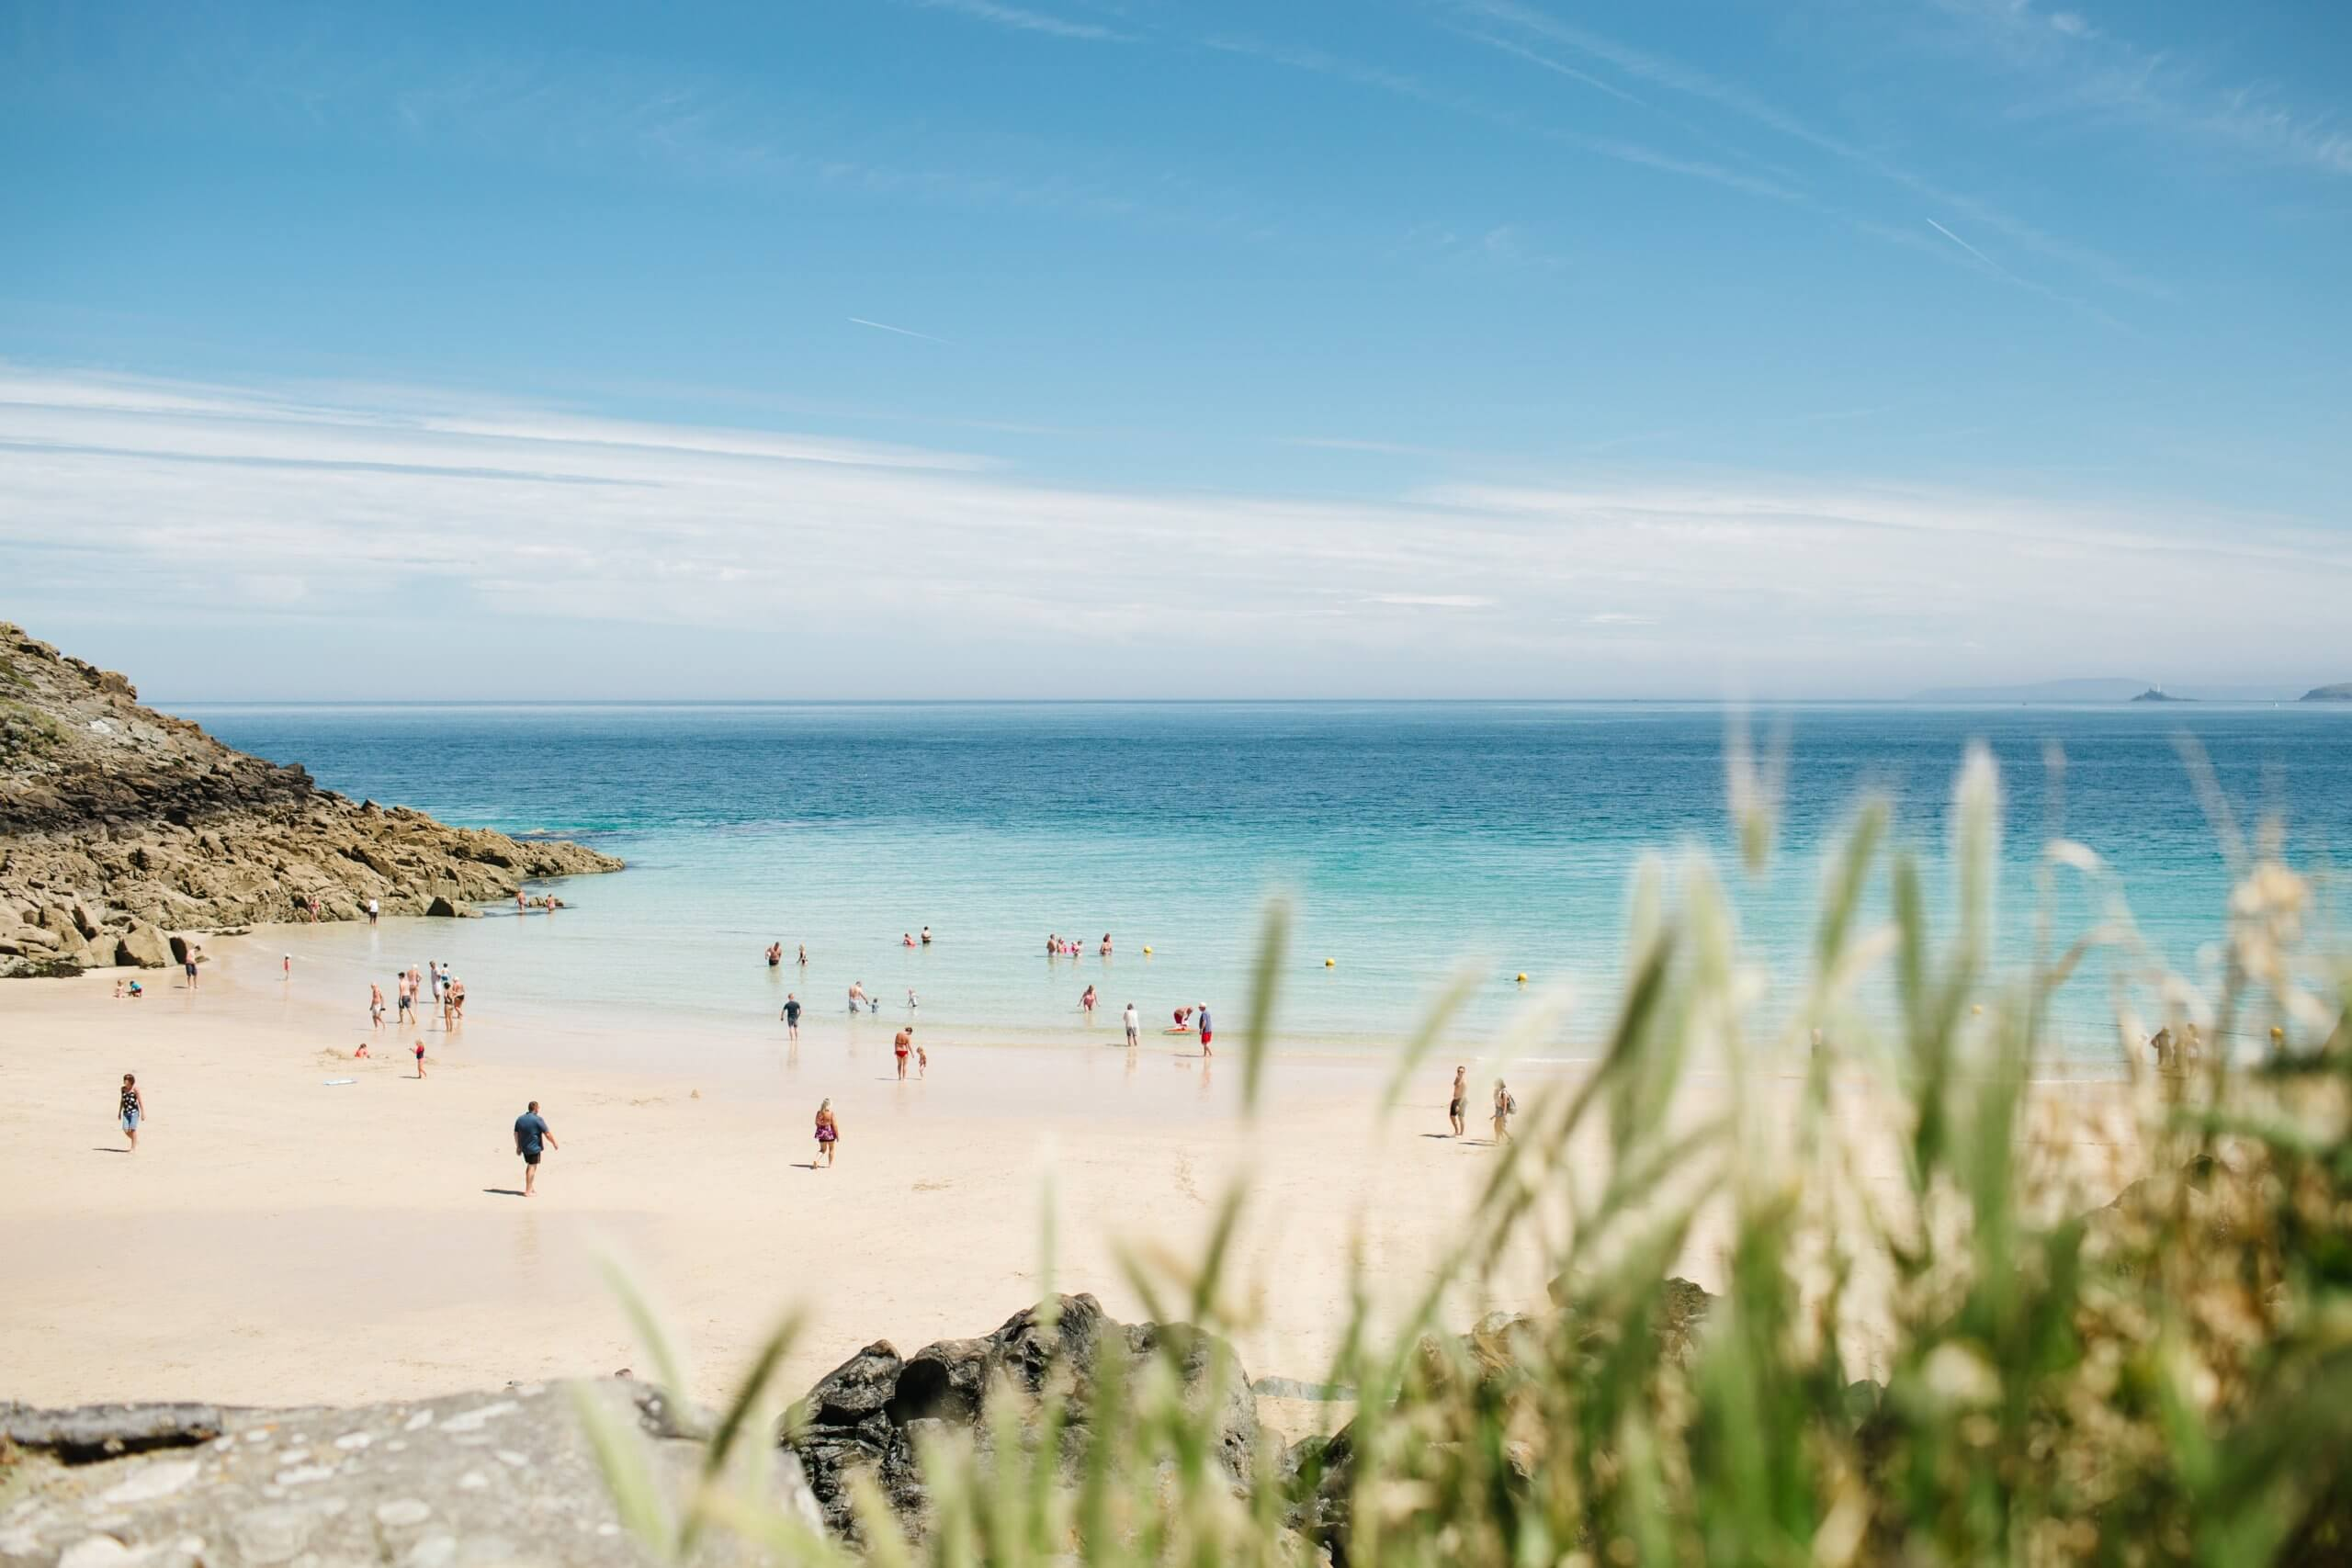 Best Family Beach Activities to Try This Summer